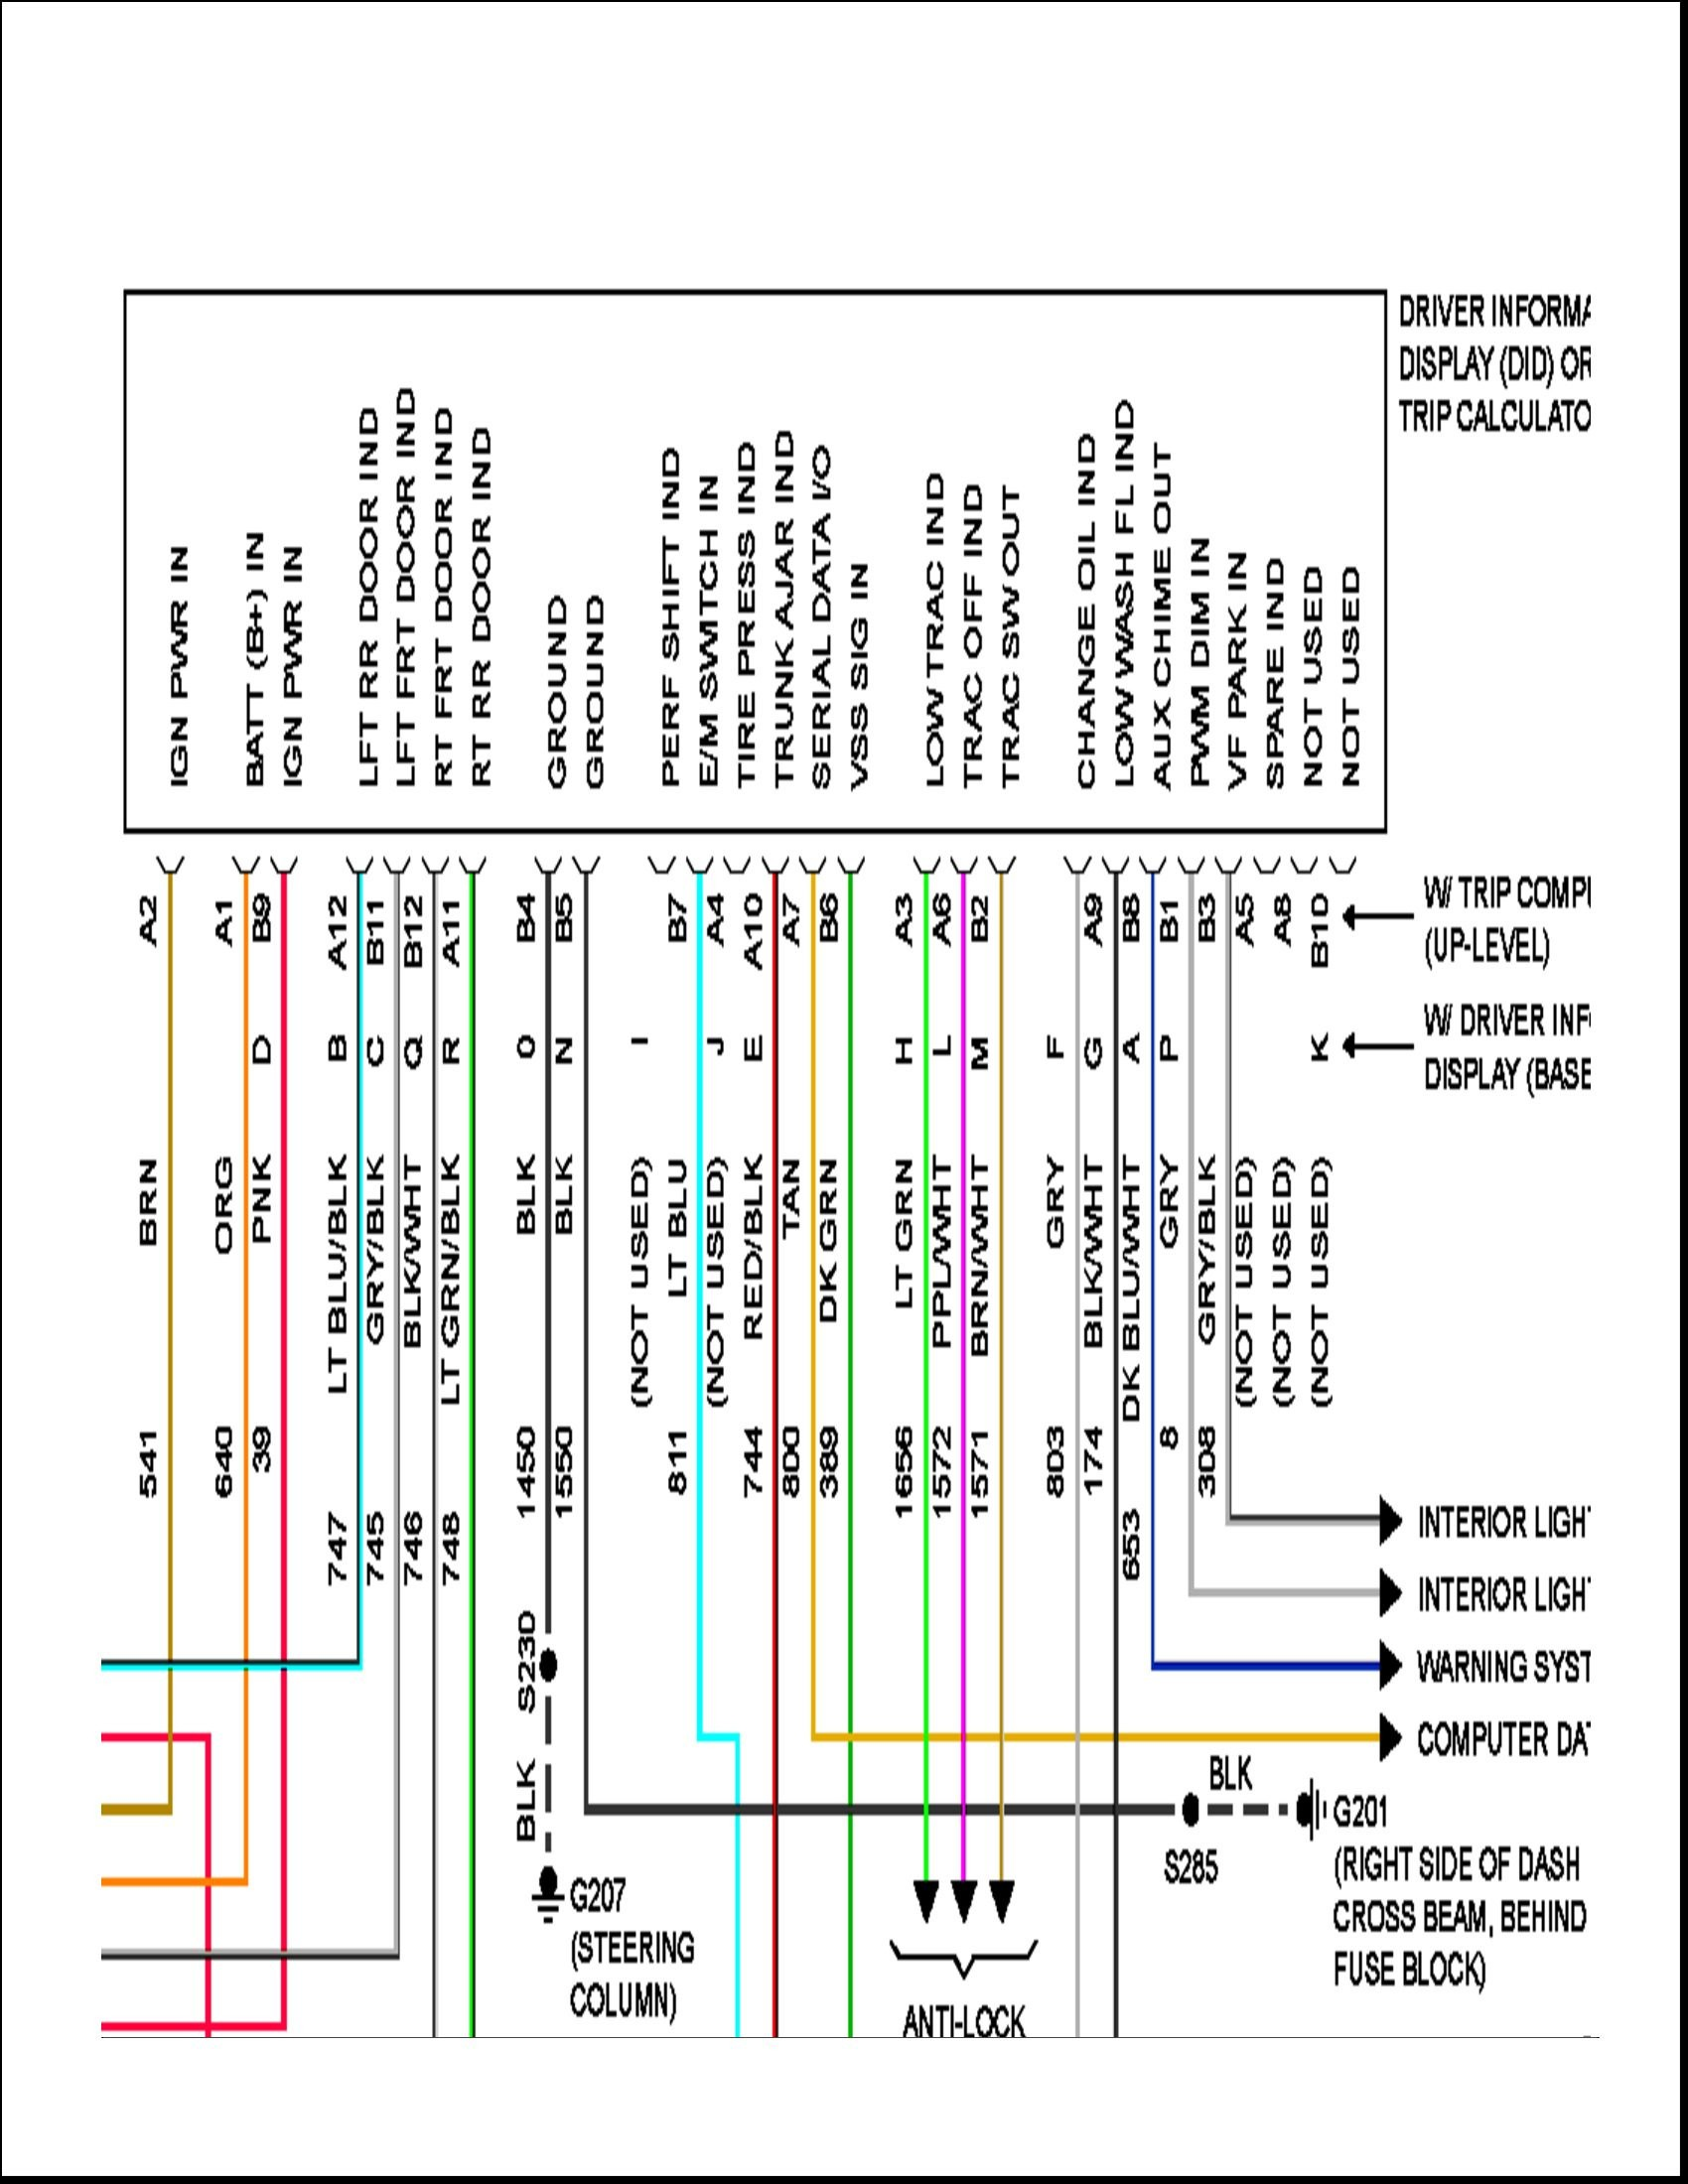 Diagram Pontiac Wave 2005 Radio Wiring Diagram Full Version Hd Quality Wiring Diagram Diagramjamare Emporiodue It